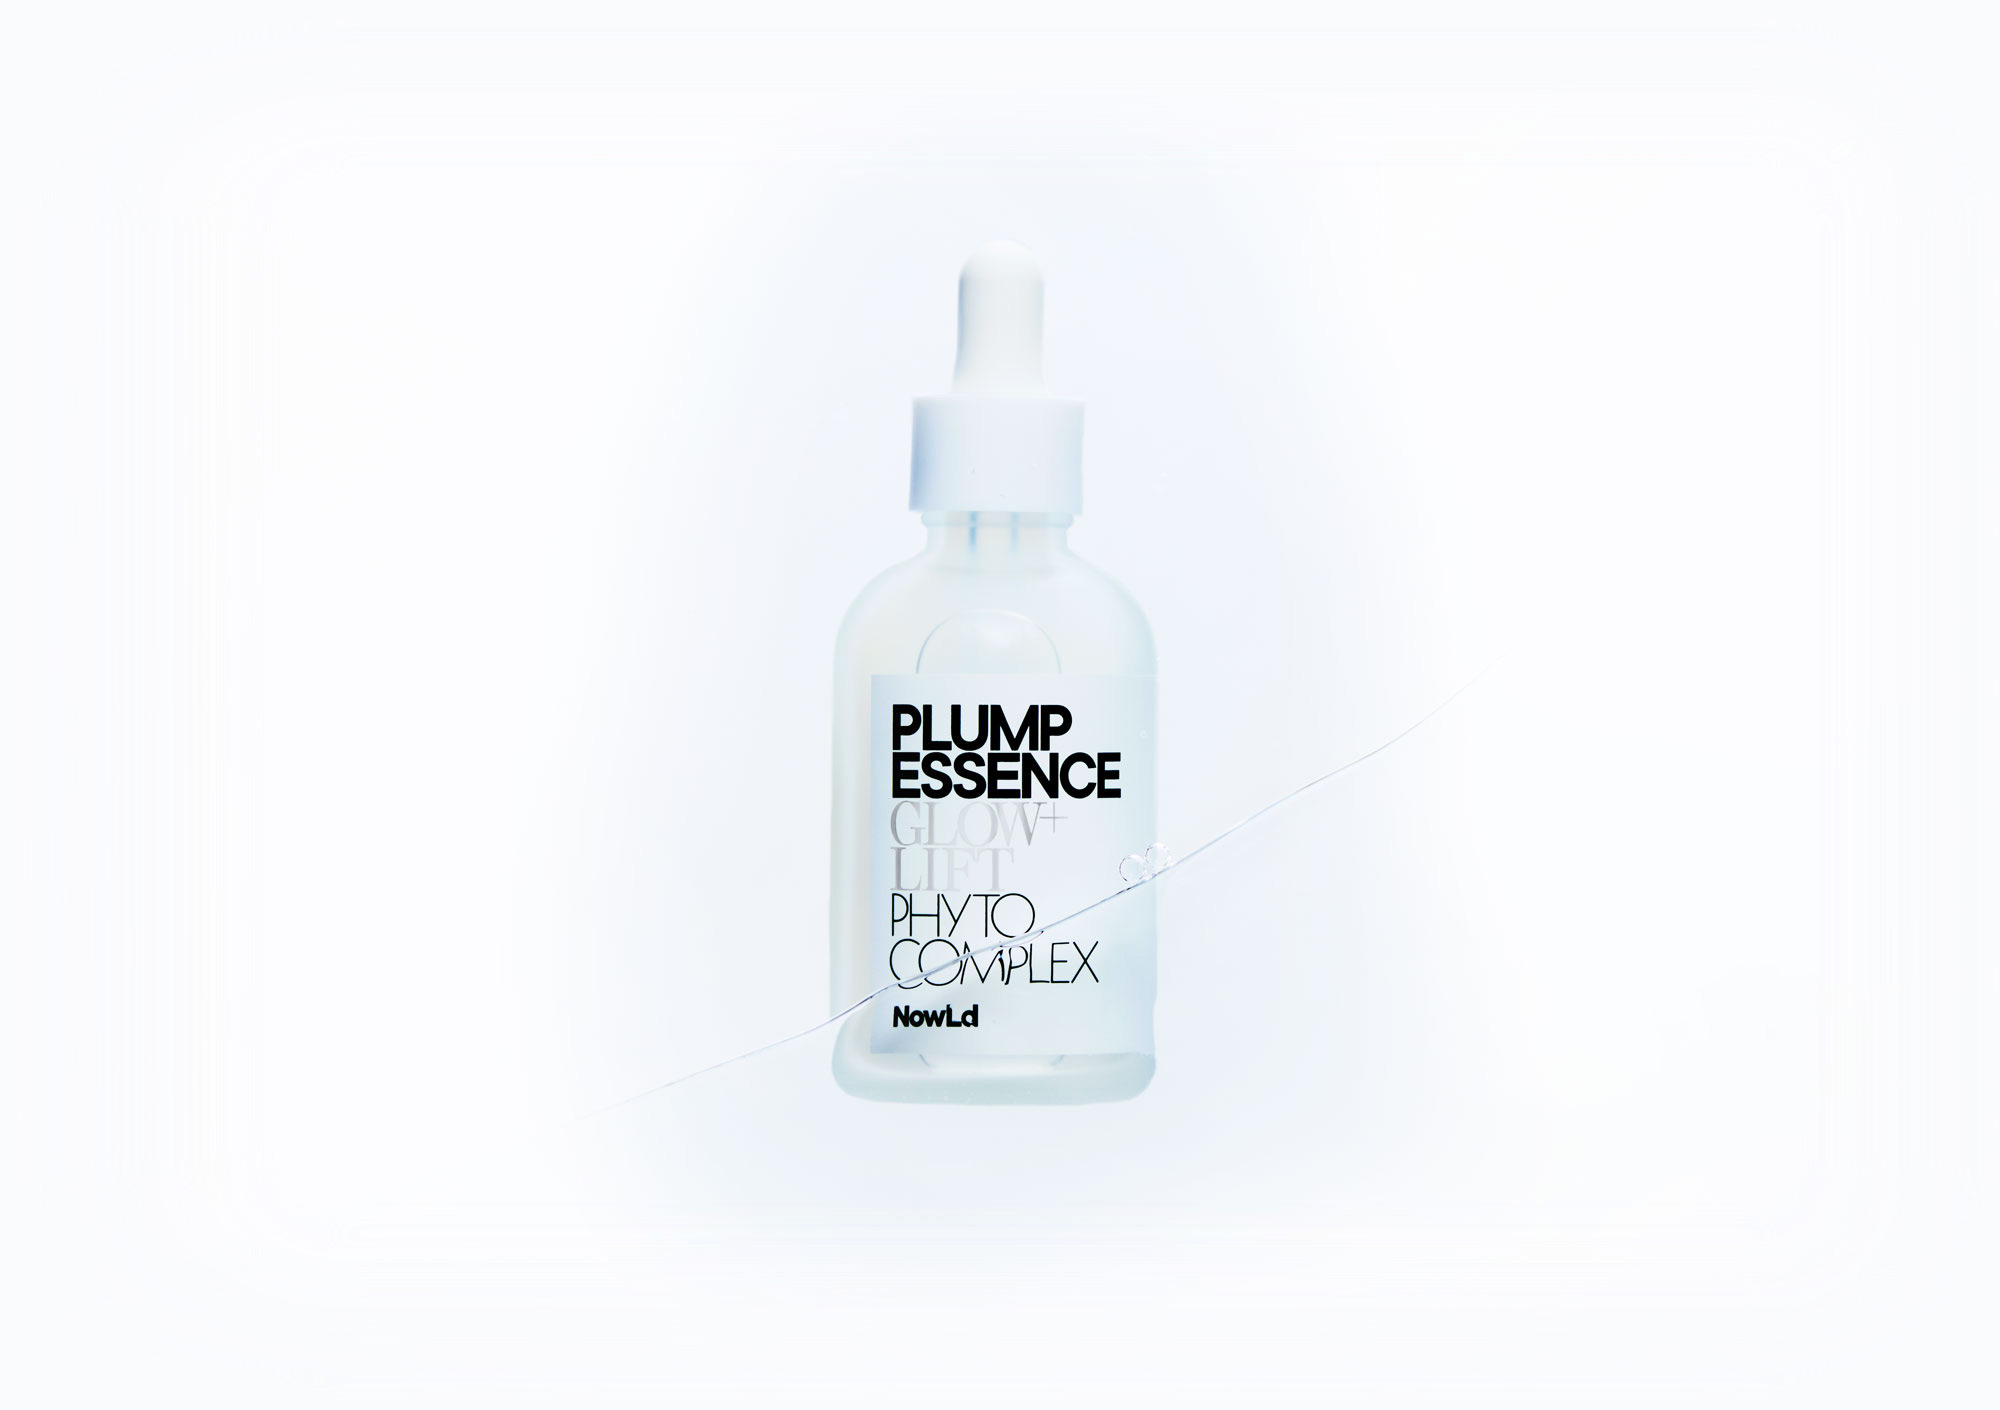 NowLd|PLUMP ESSENCE|Product Feature